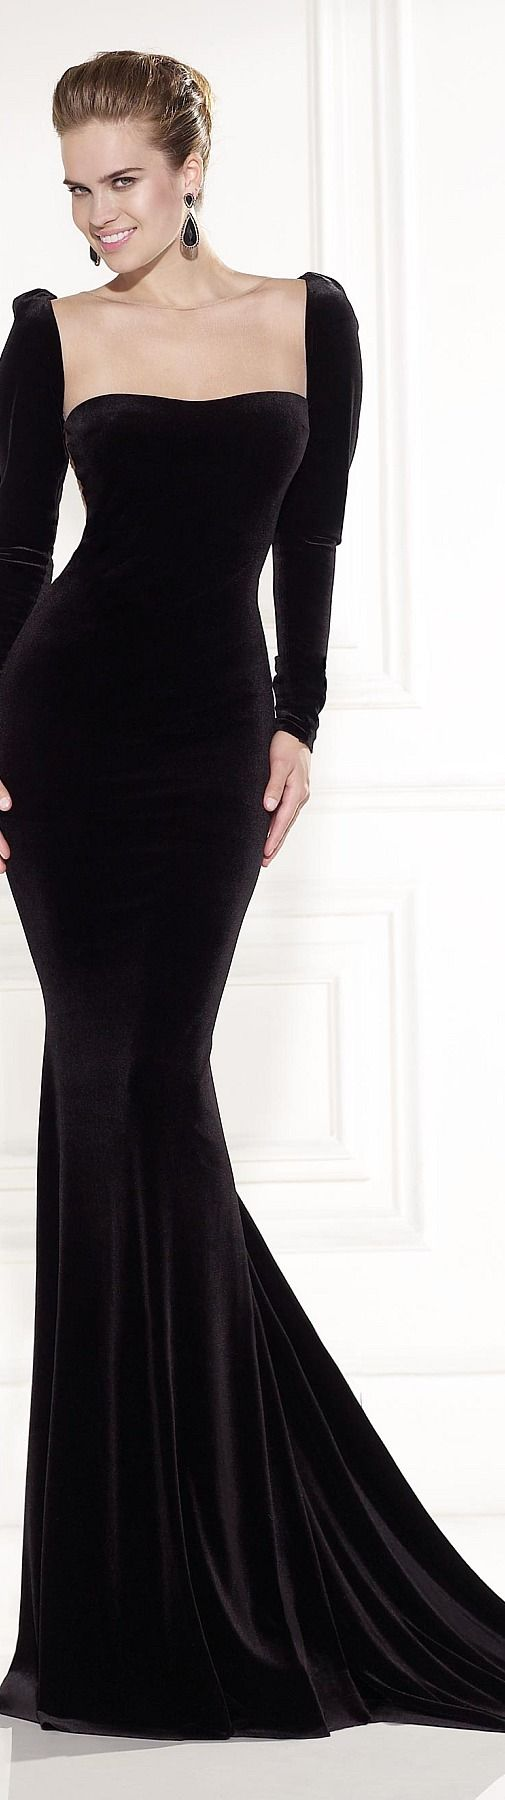 Very simple and to the point black long sleeve evening gown.